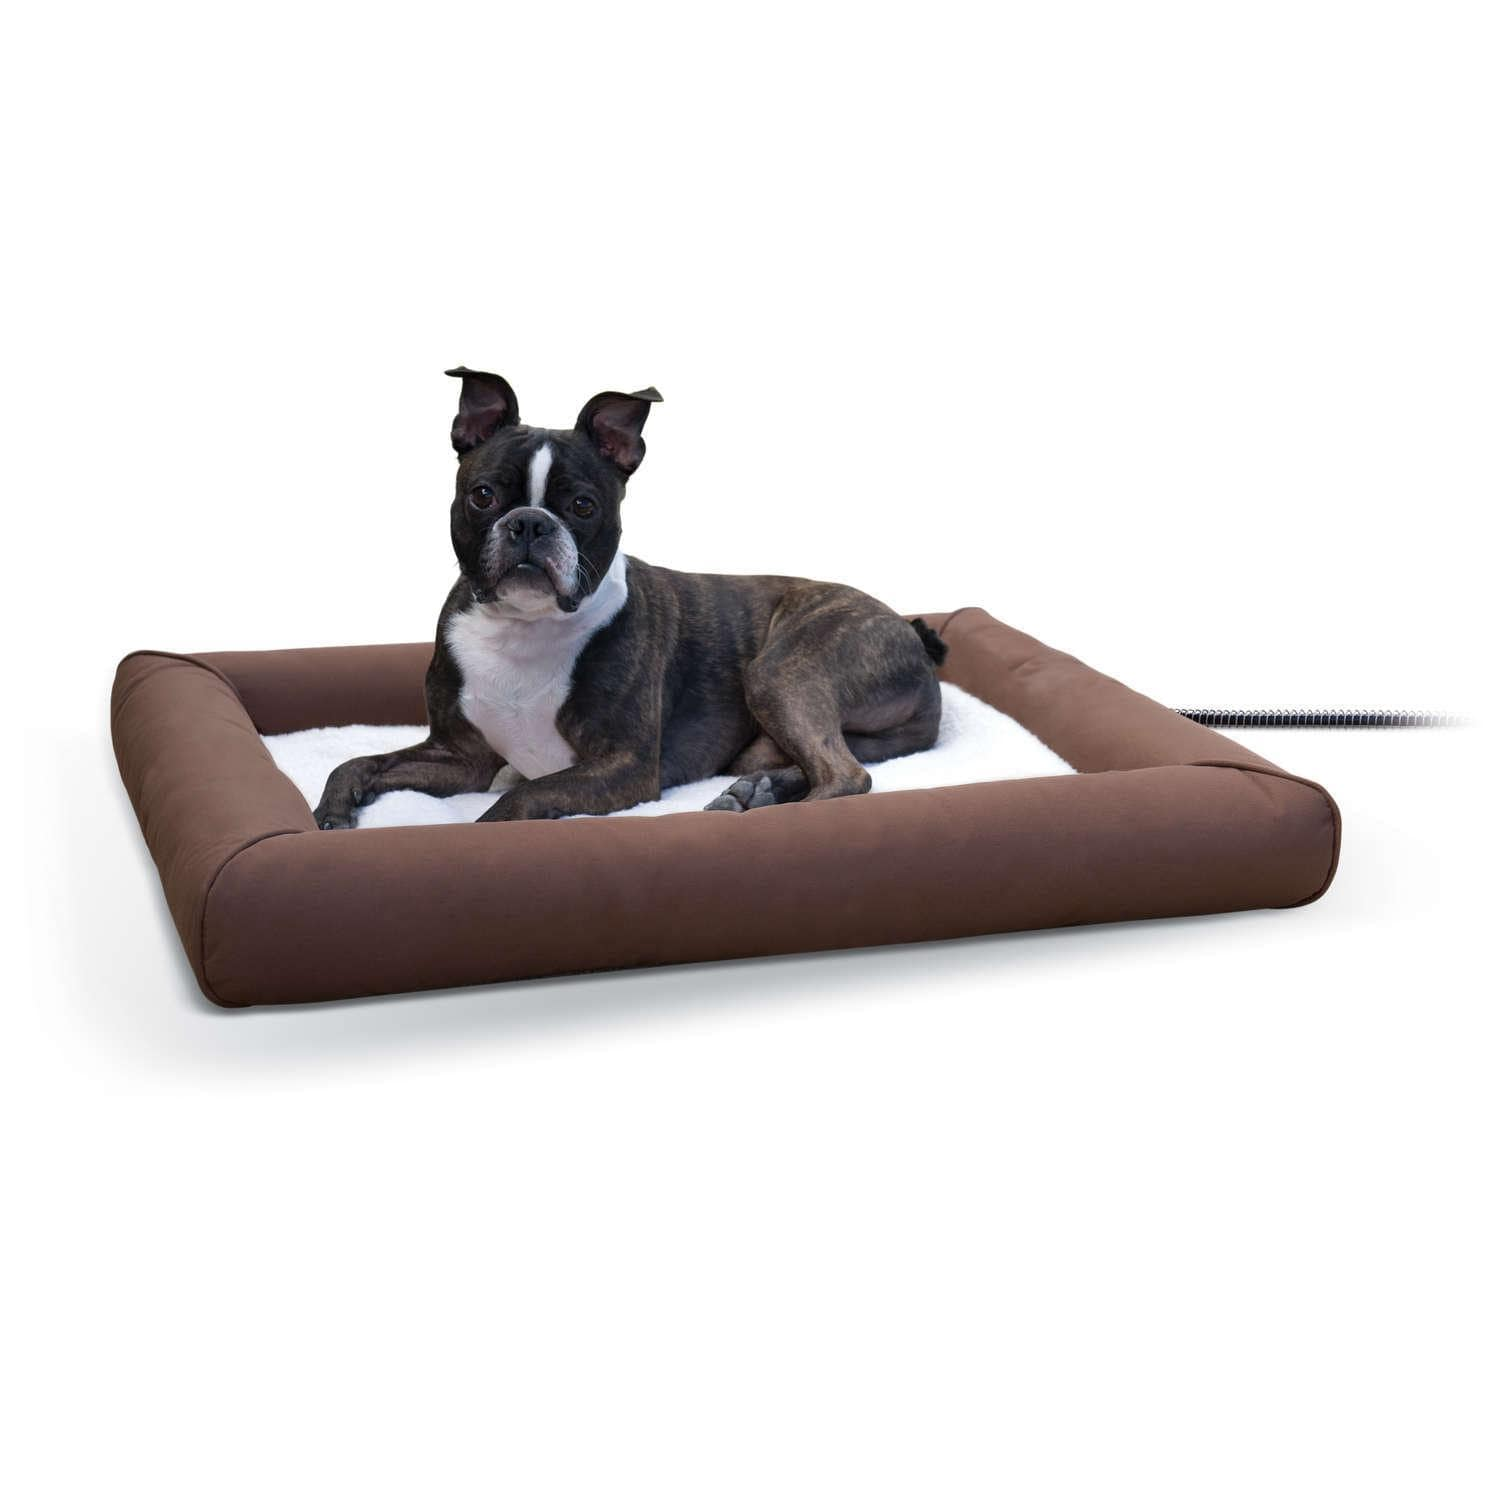 """K&h Pet Products Deluxe Lectro-soft Outdoor Heated Pet Bed Medium Brown 26.5"""" X 30.5"""" X 3.5"""" - Got2Save"""